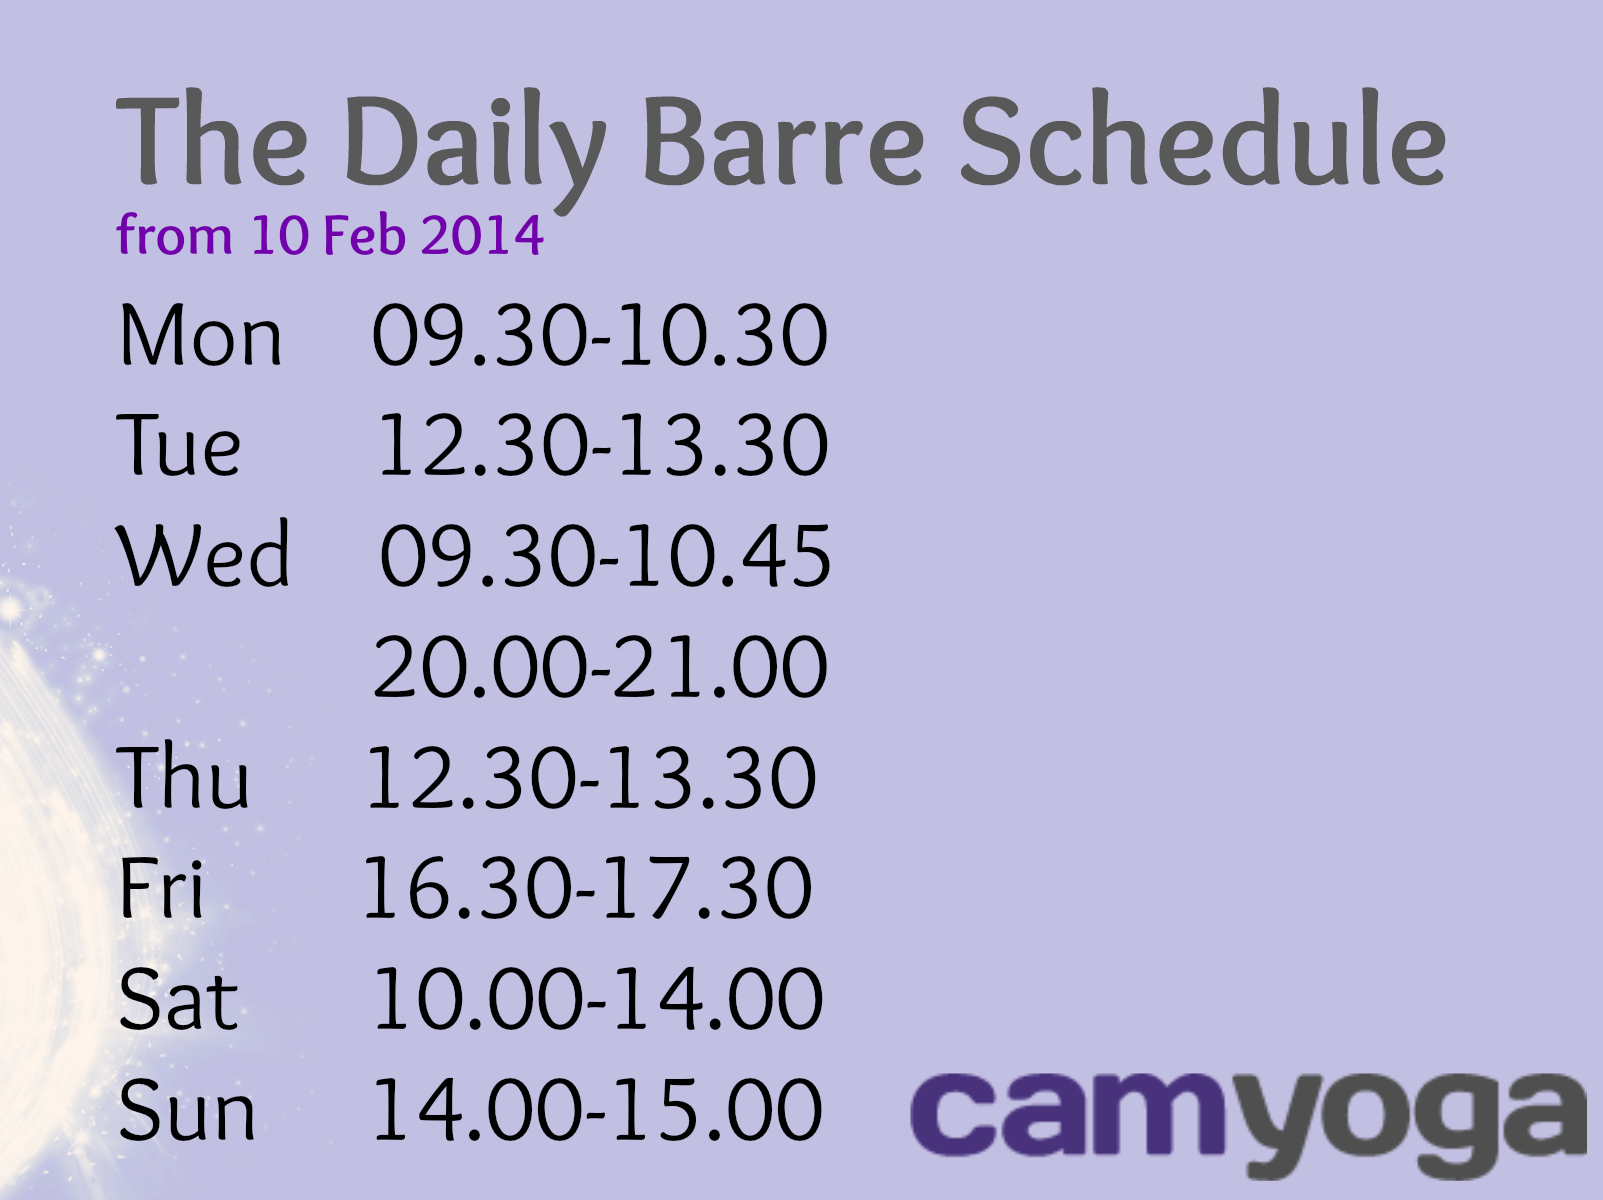 dailybarre